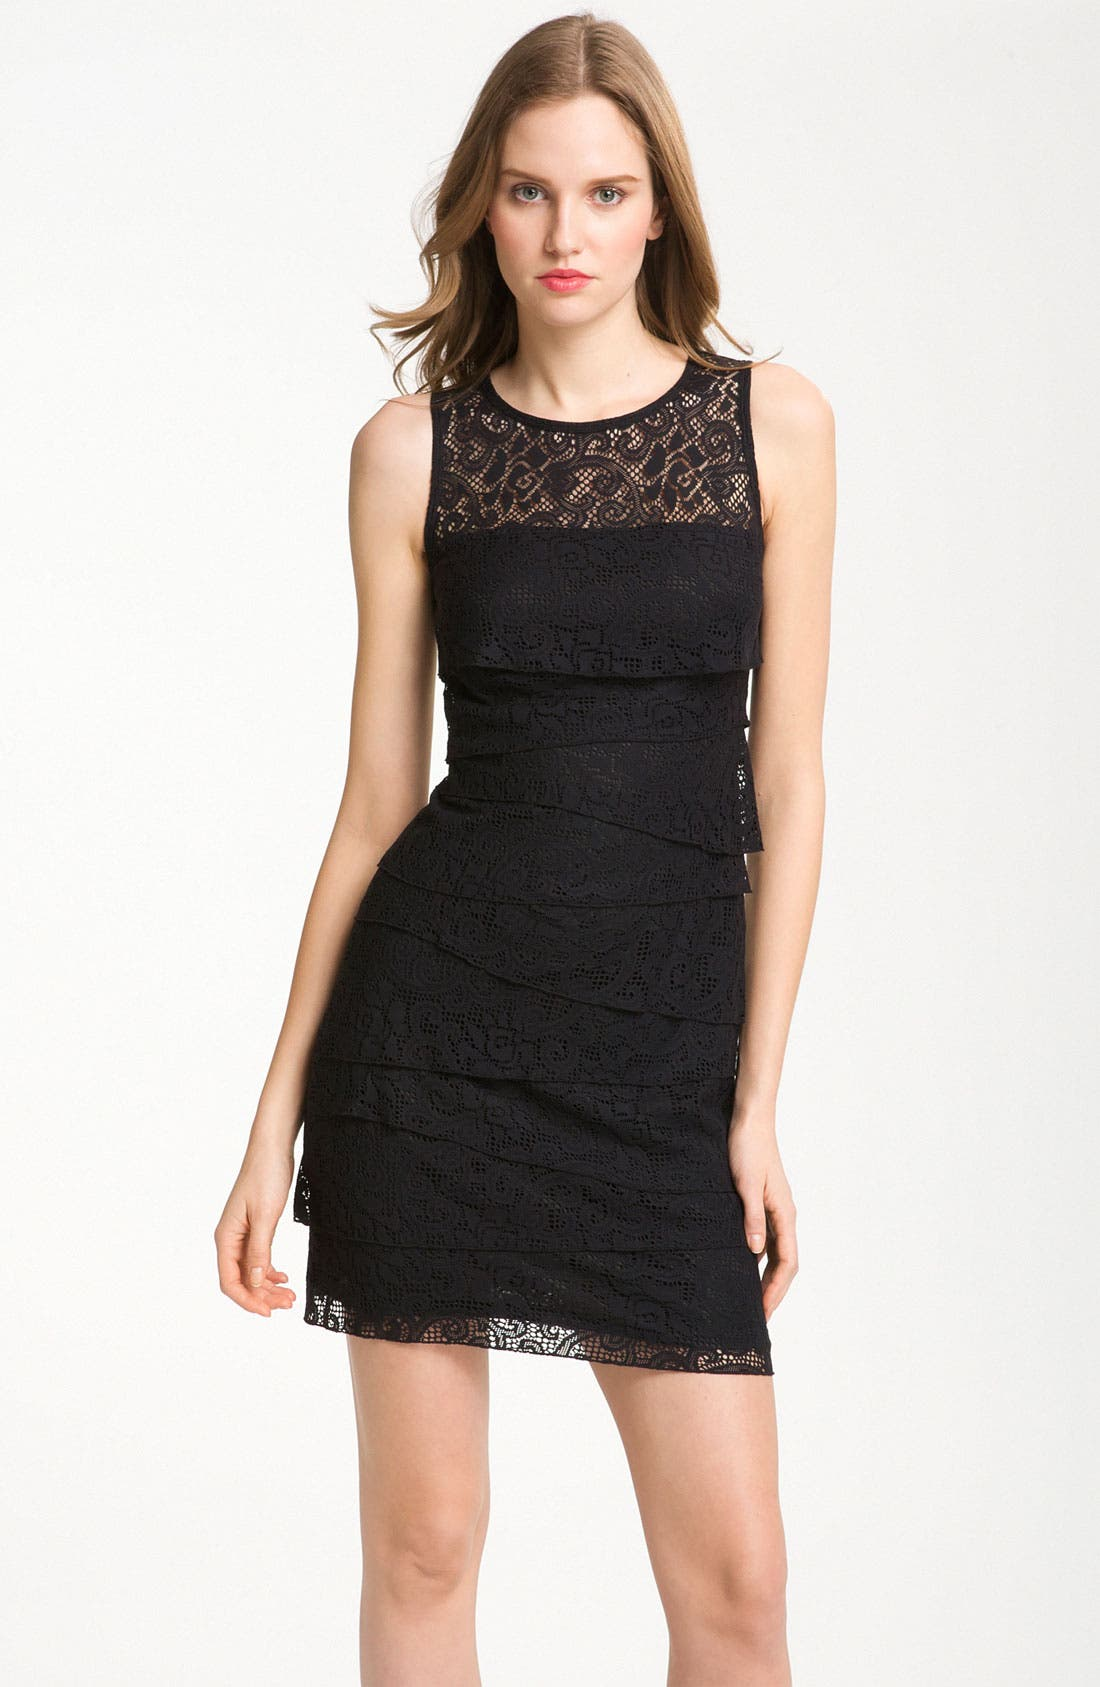 Alternate Image 1 Selected - Laundry by Shelli Segal Tiered Lace Sleeveless Minidress